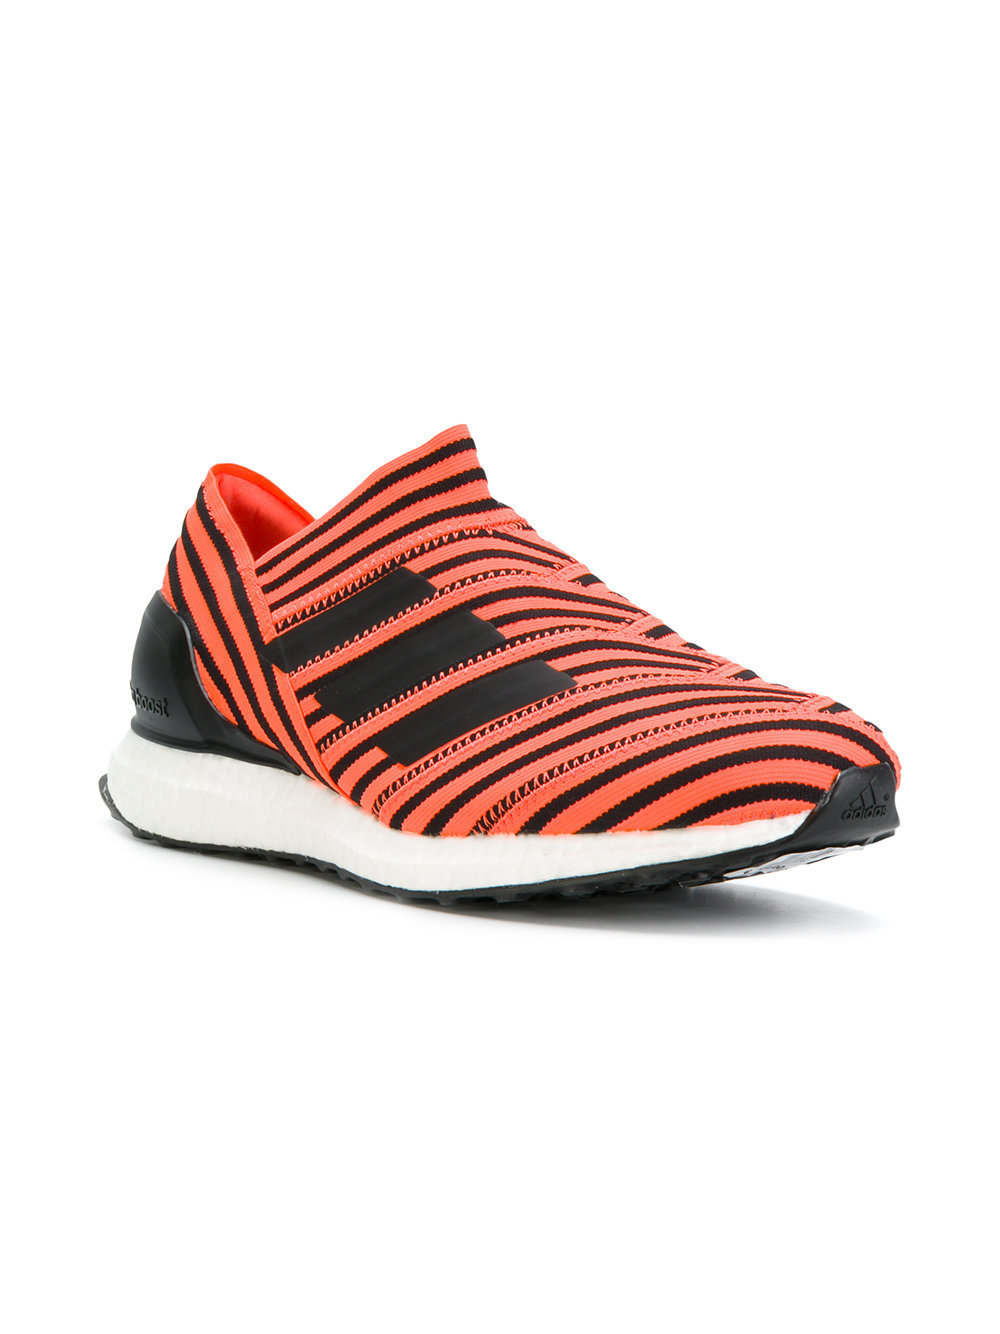 0434175062e4 ... Athletic Shoes adidas Nemeziz Tango 17 Sneakers ...